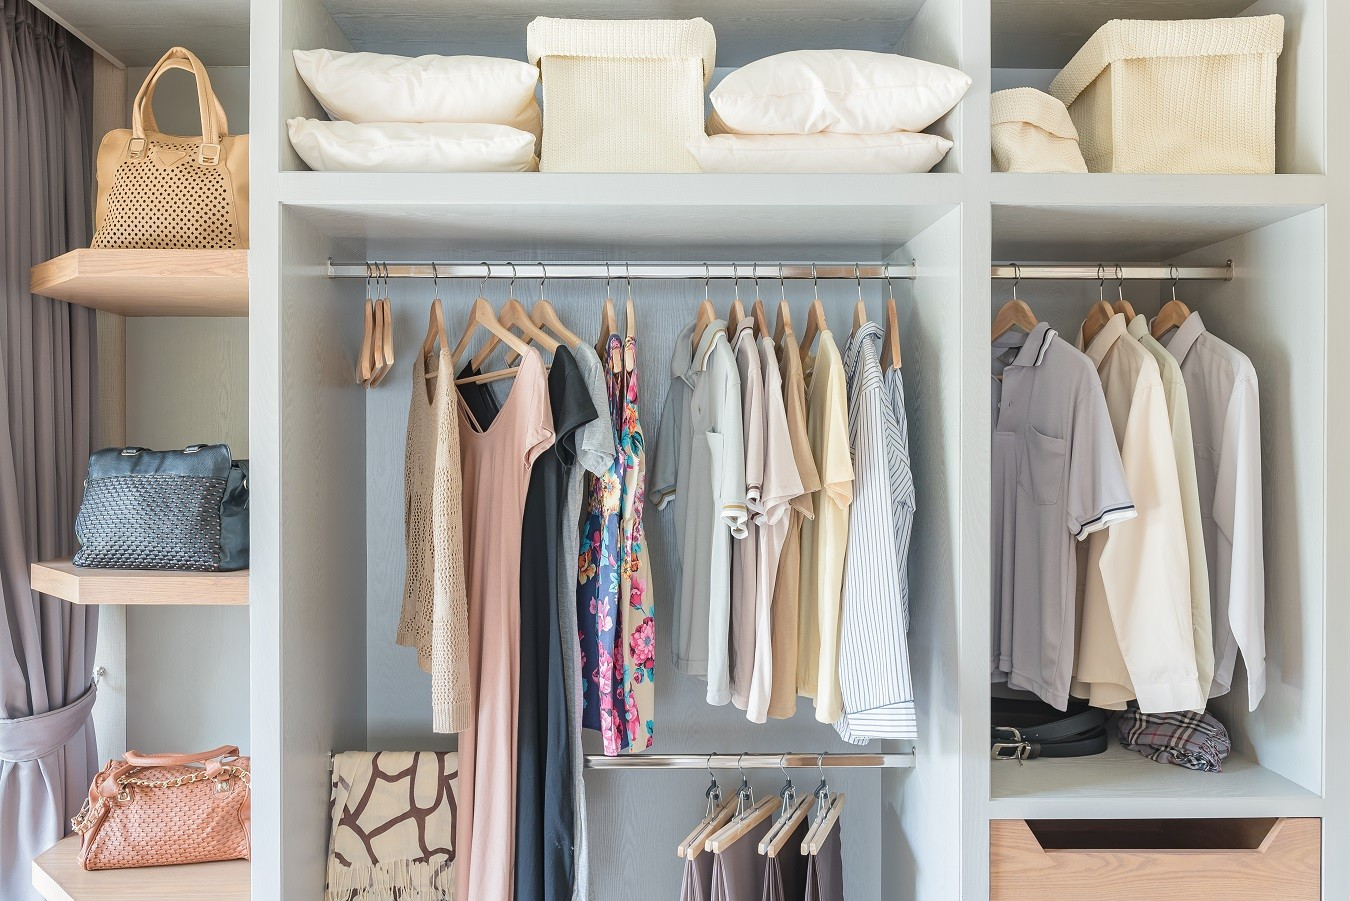 Ask us about our interior organisation and Styling services - Your experts in decluttering services & wardrobe organisation